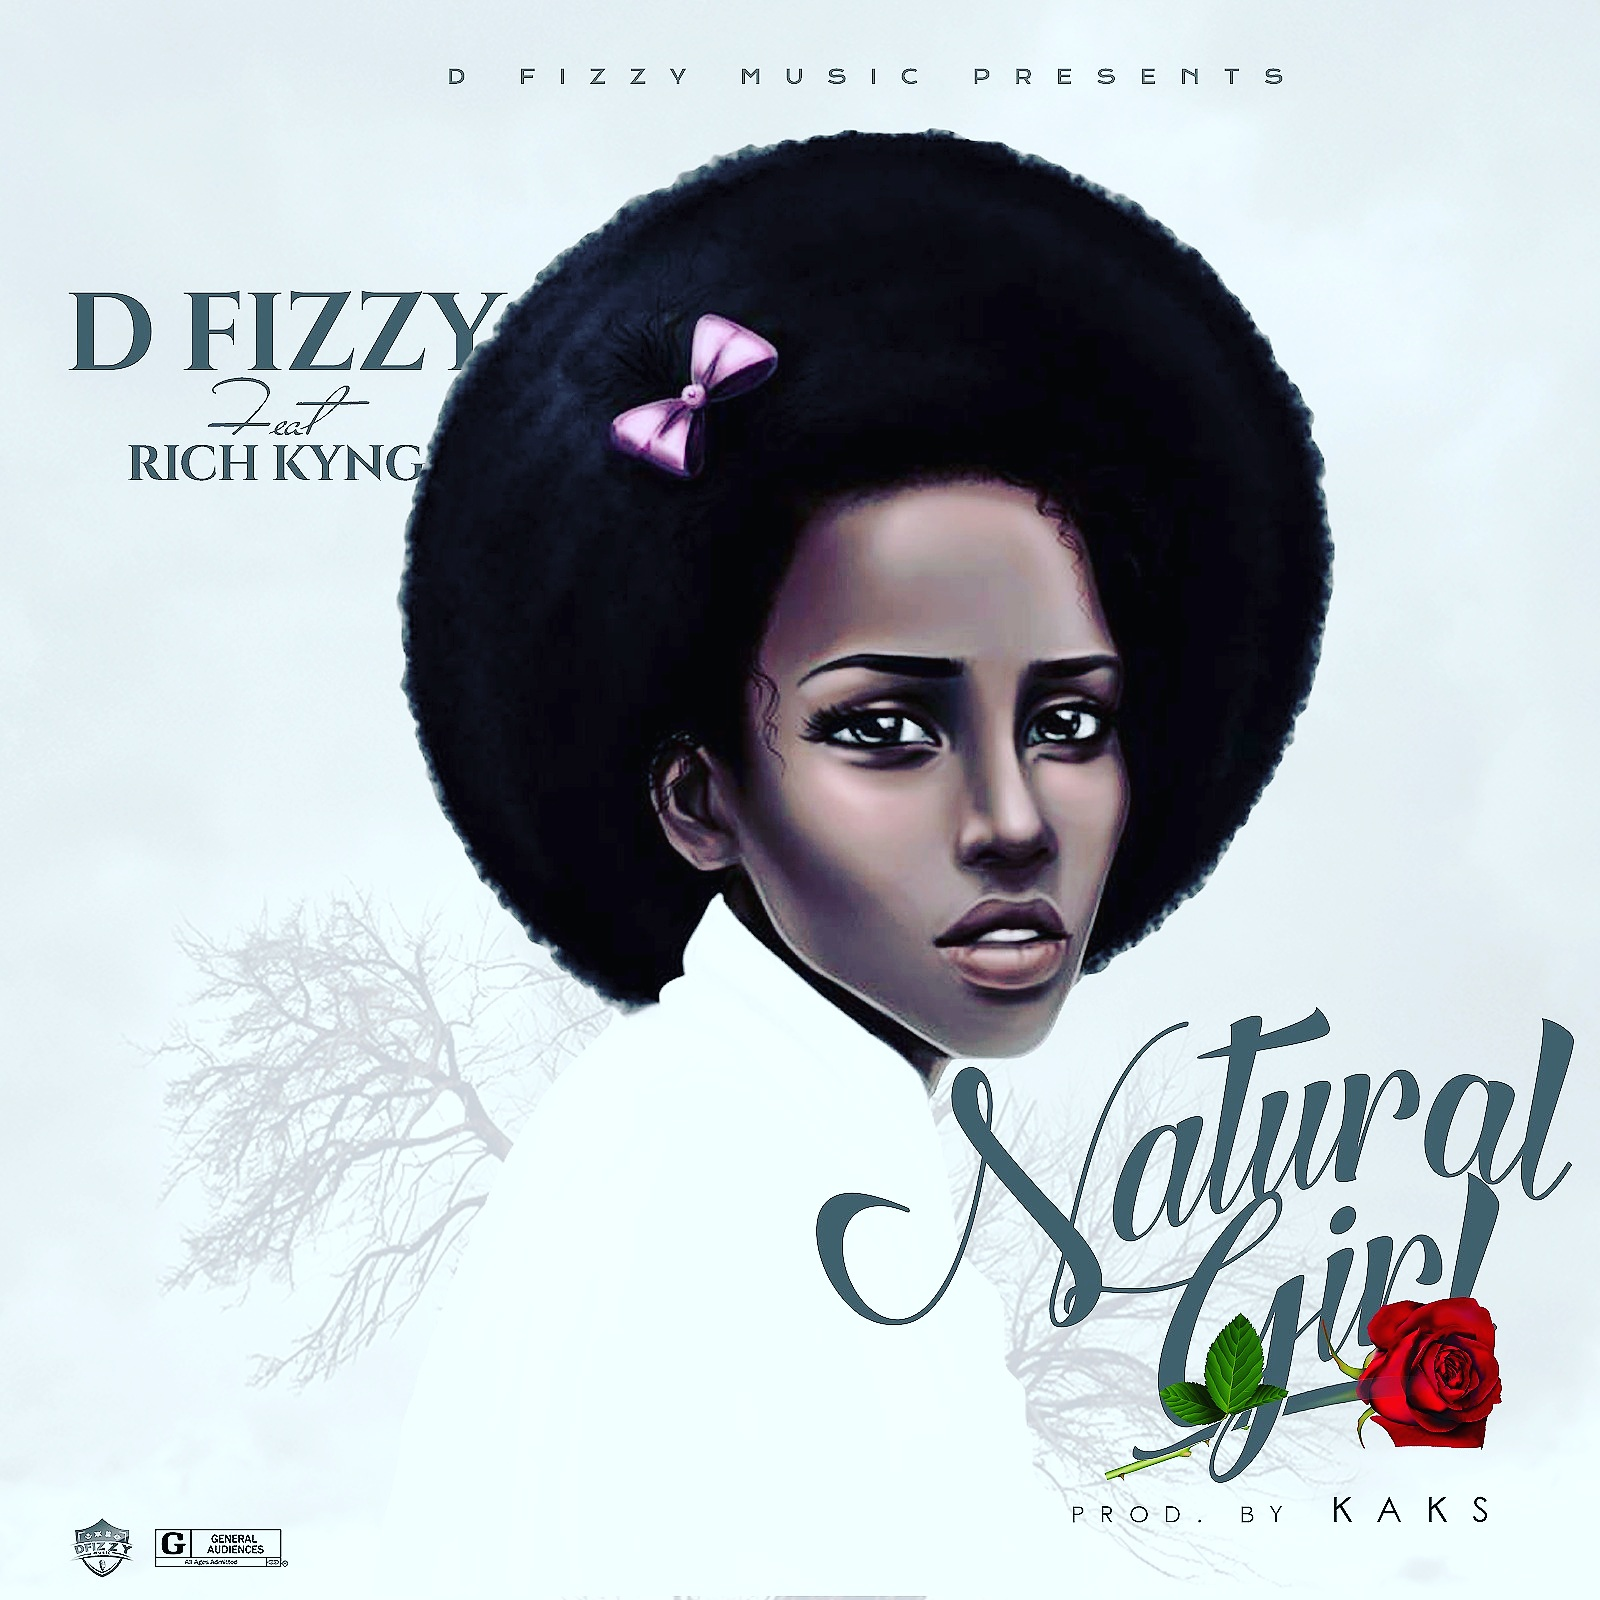 Dfizzy ft Richy Kyng - Natural Girl (Prod by Kaks)